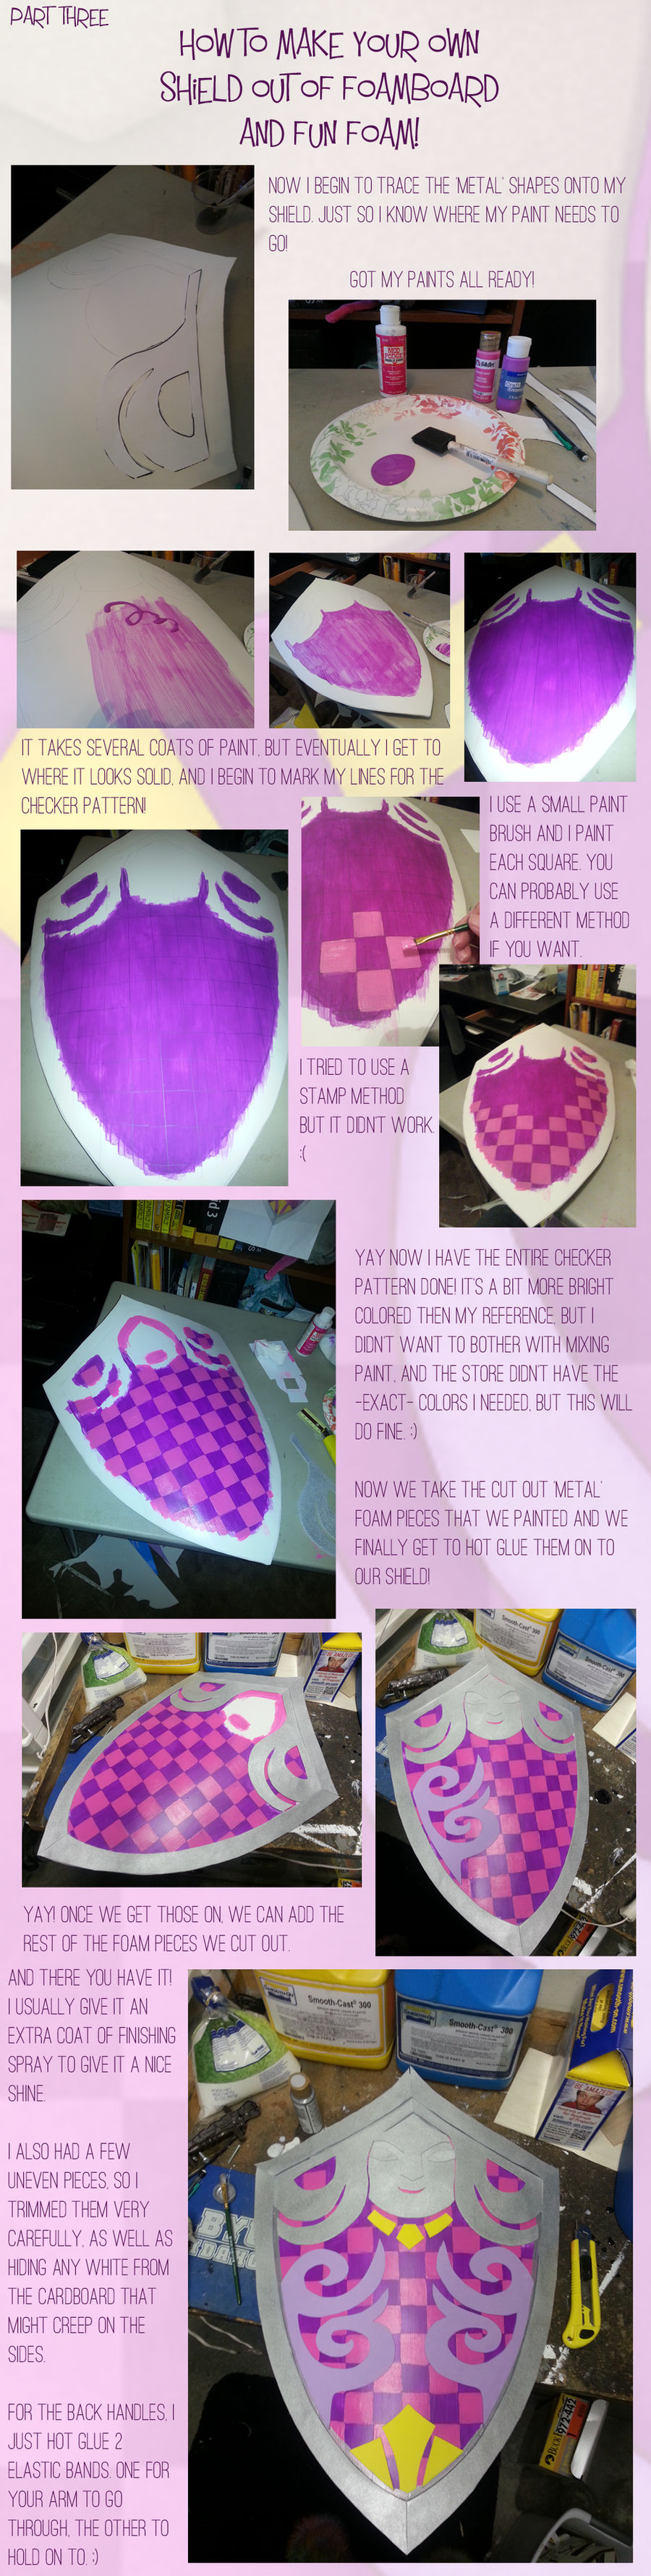 How to make your own shield - Part 3